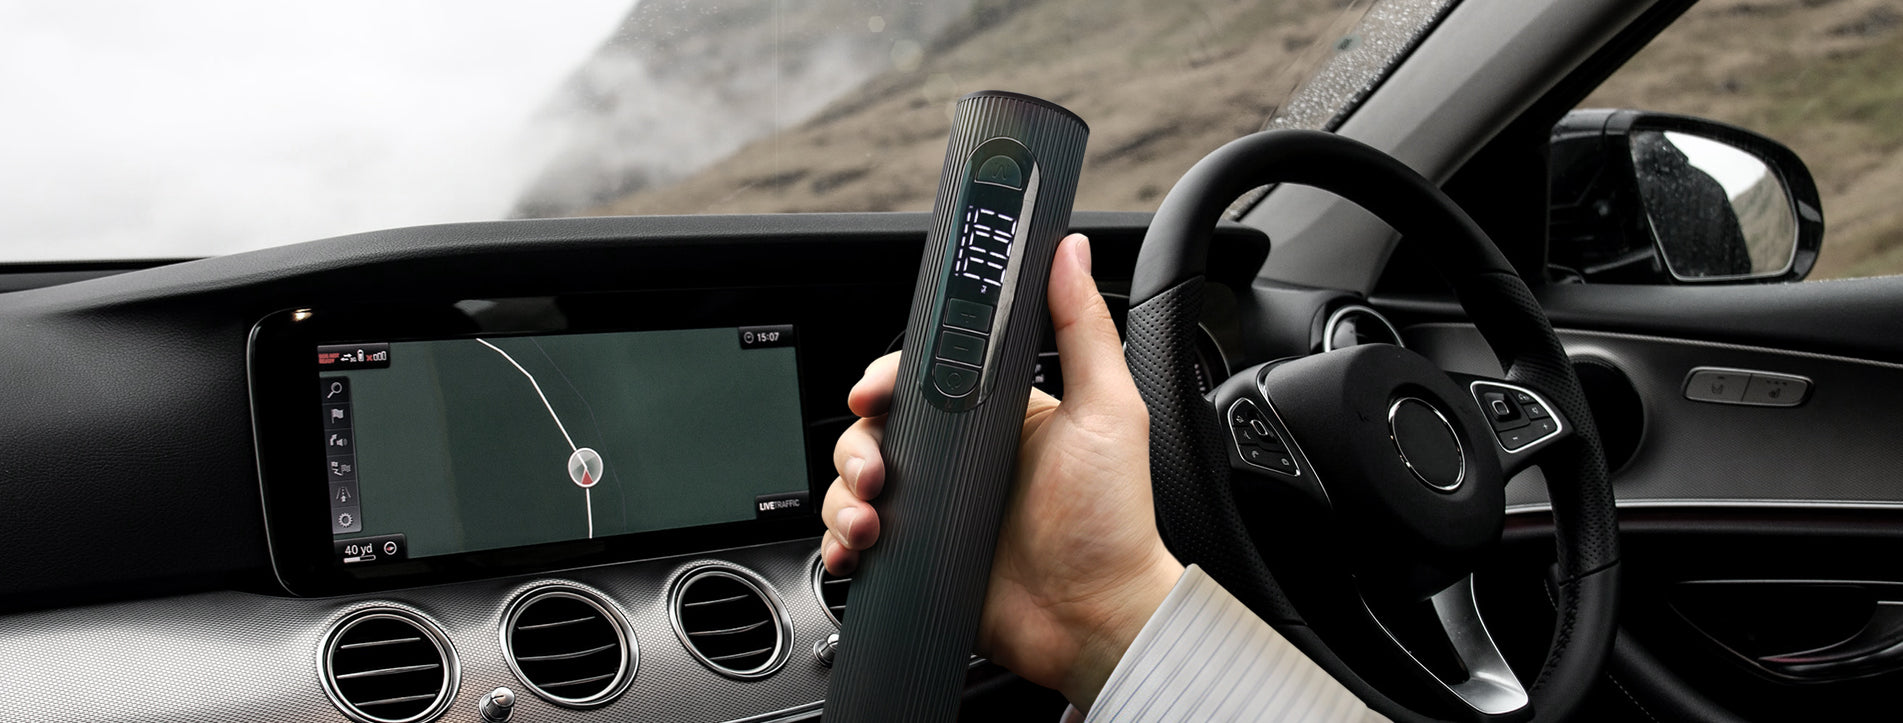 TESGO Mini Tire Inflator World's smallest and most portable tire inflator